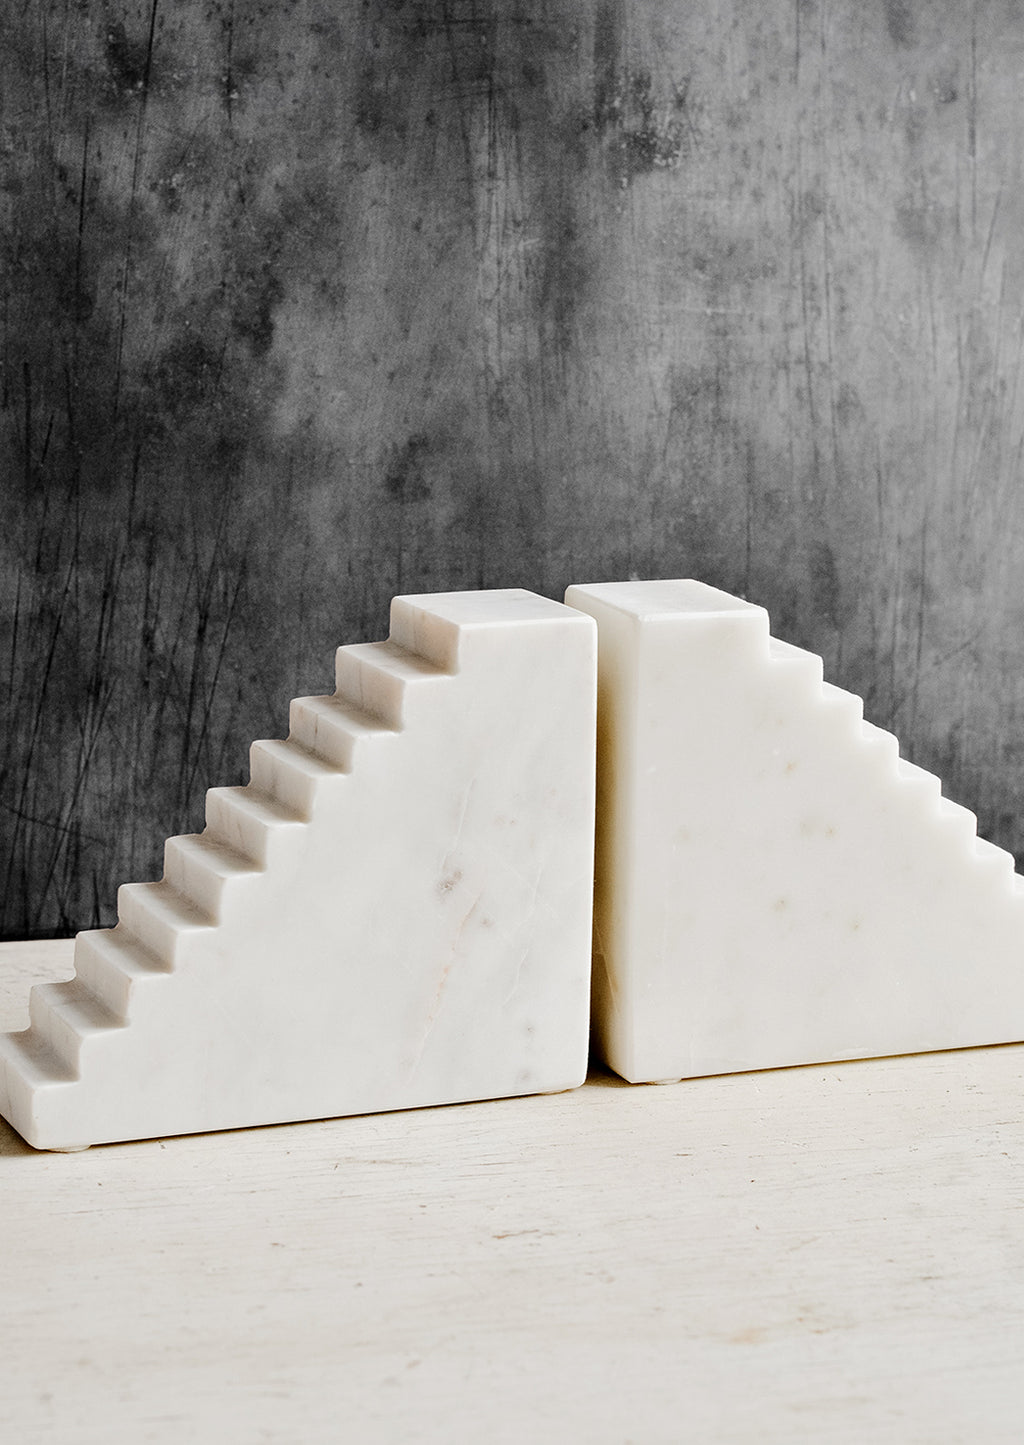 1: A pair of white marble bookends with staircase design.